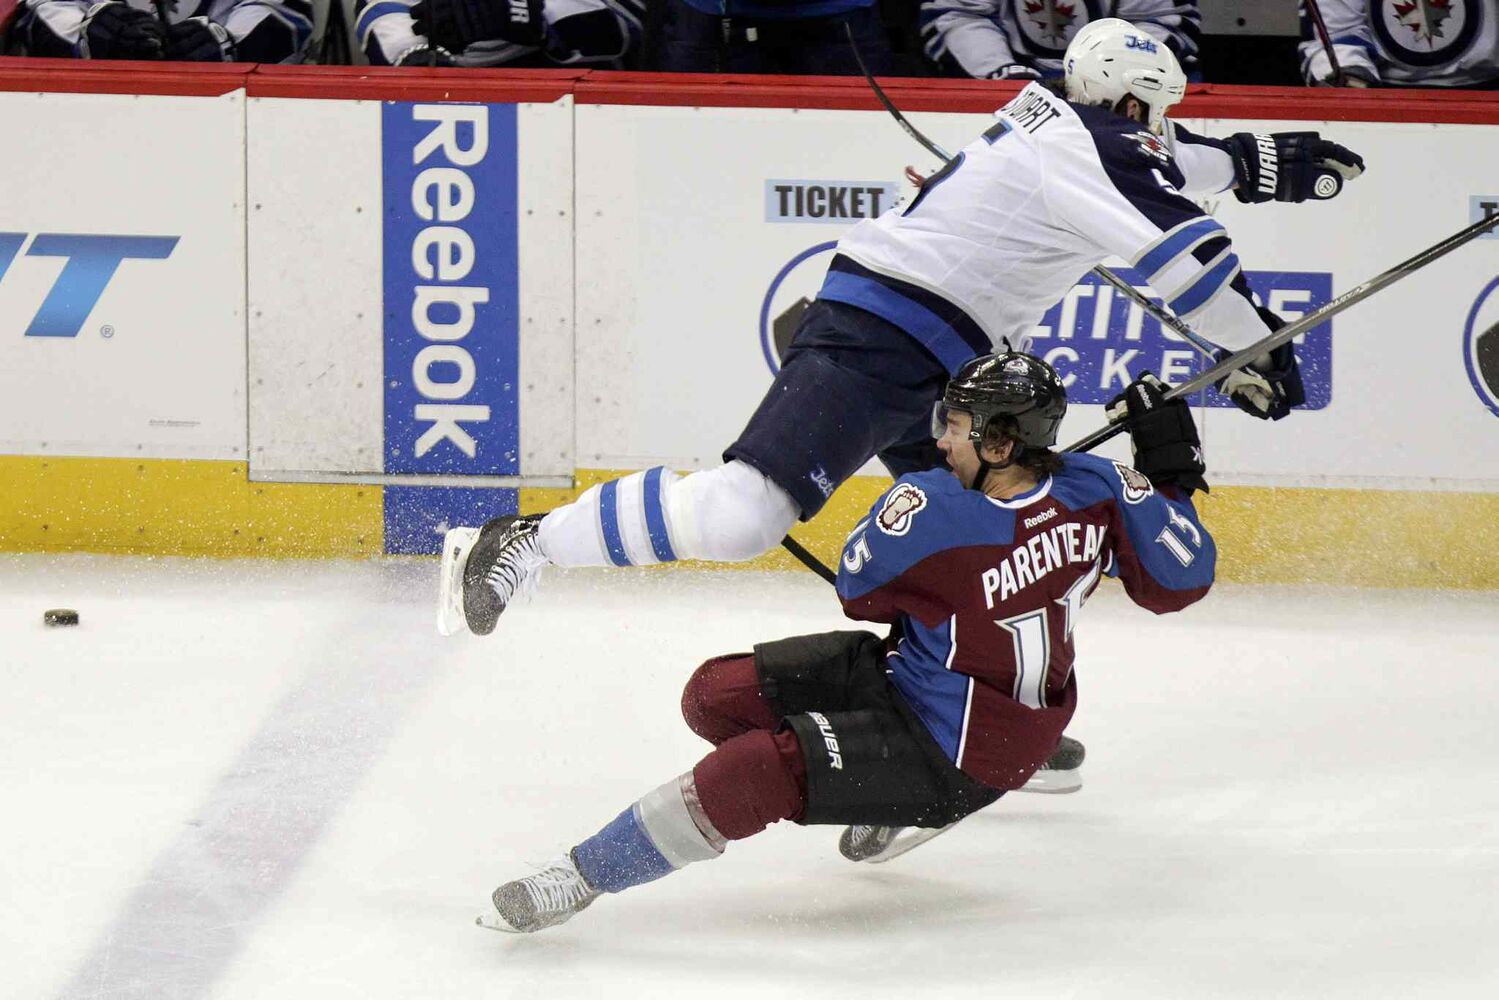 Winnipeg Jets defenceman Mark Stuart lays out the Colorado Avalanche's P.A. Parenteau during the first period.